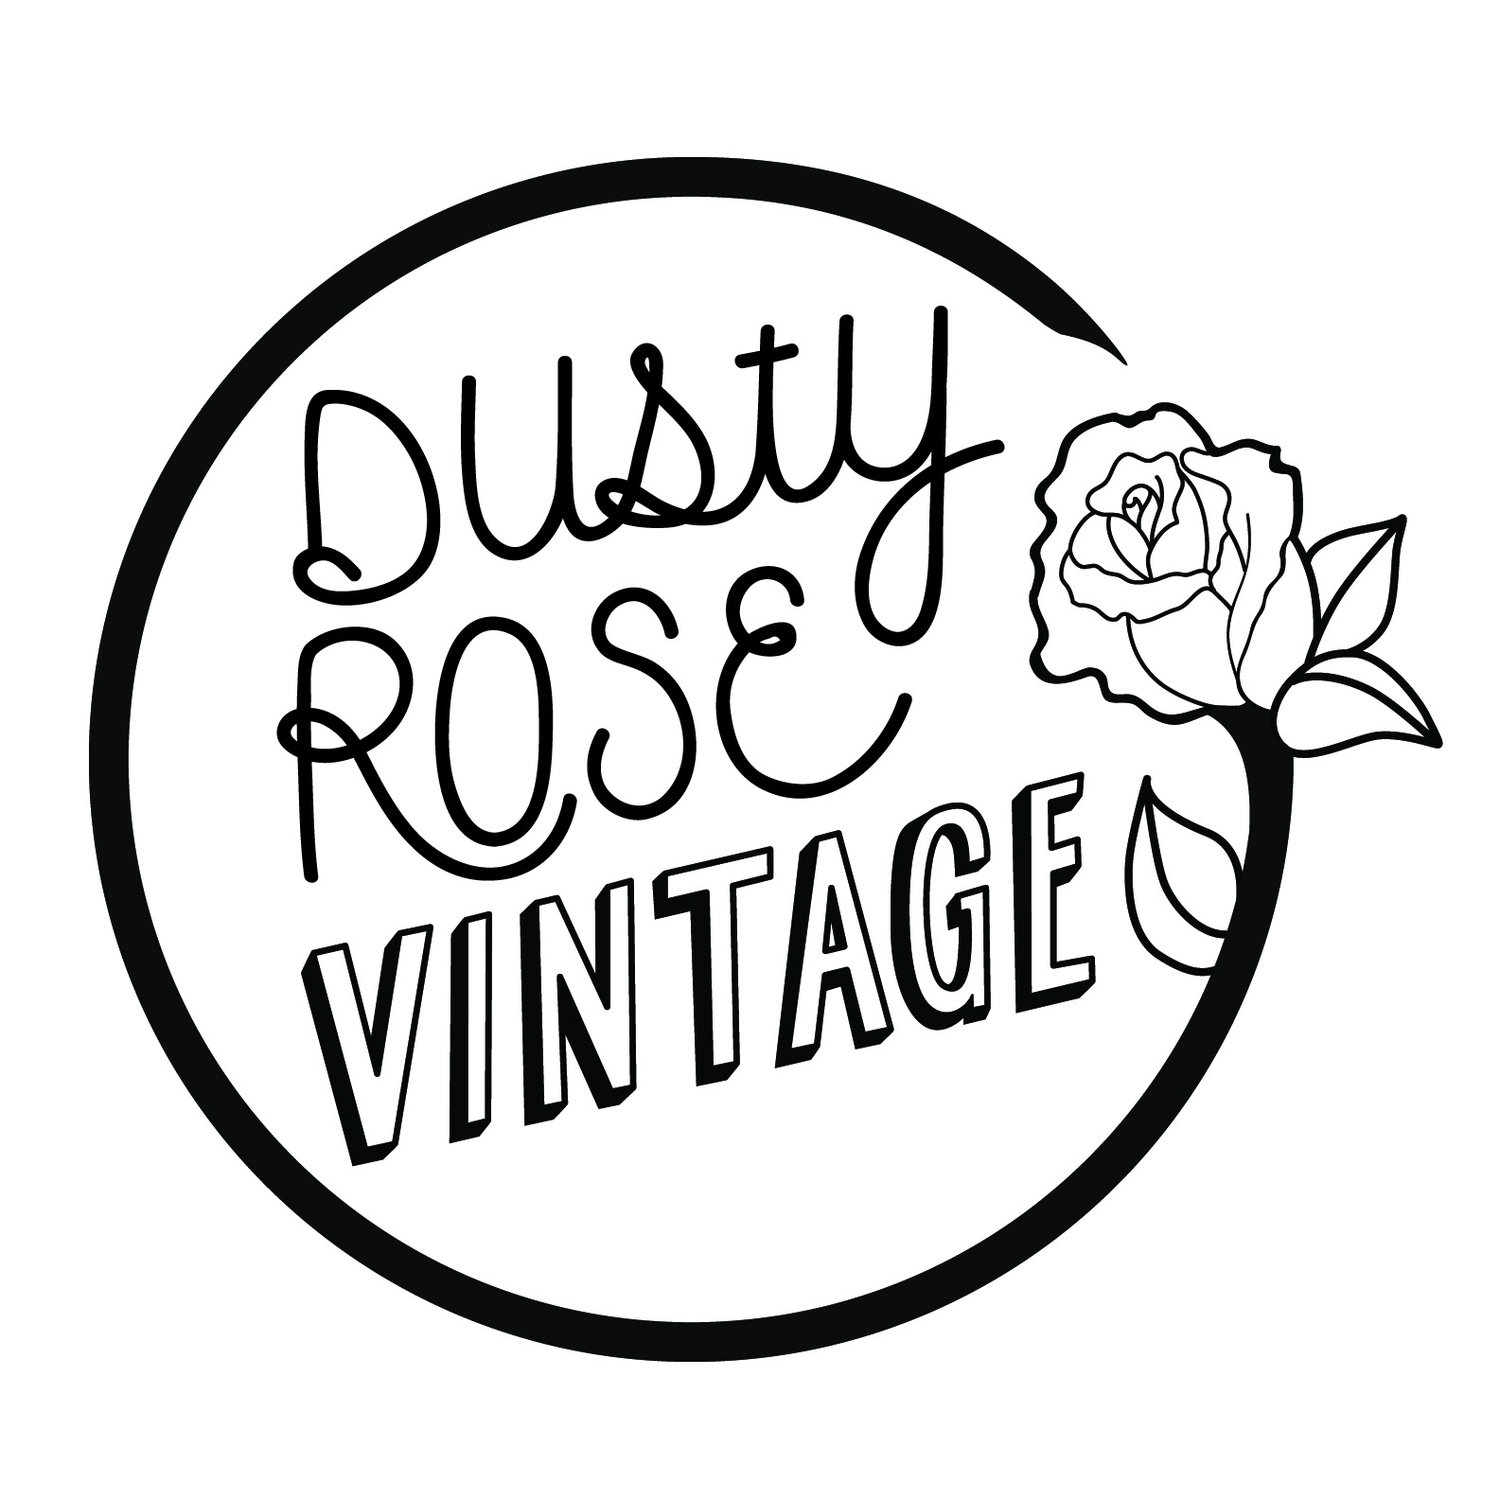 Dusty Rose Vintage